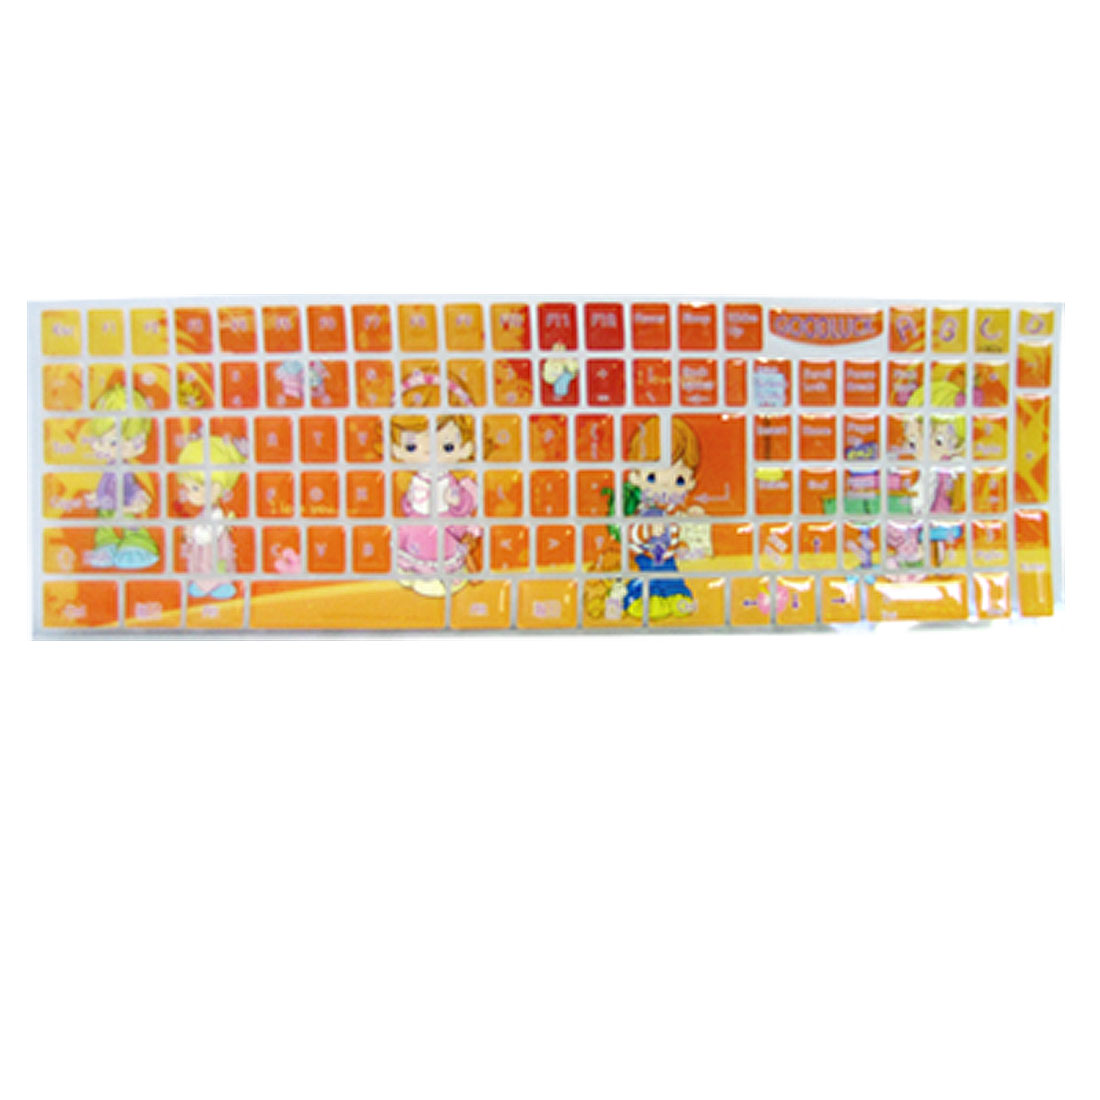 Keyboard Orange Cute Pattern Resin Stickers for Laptop PC